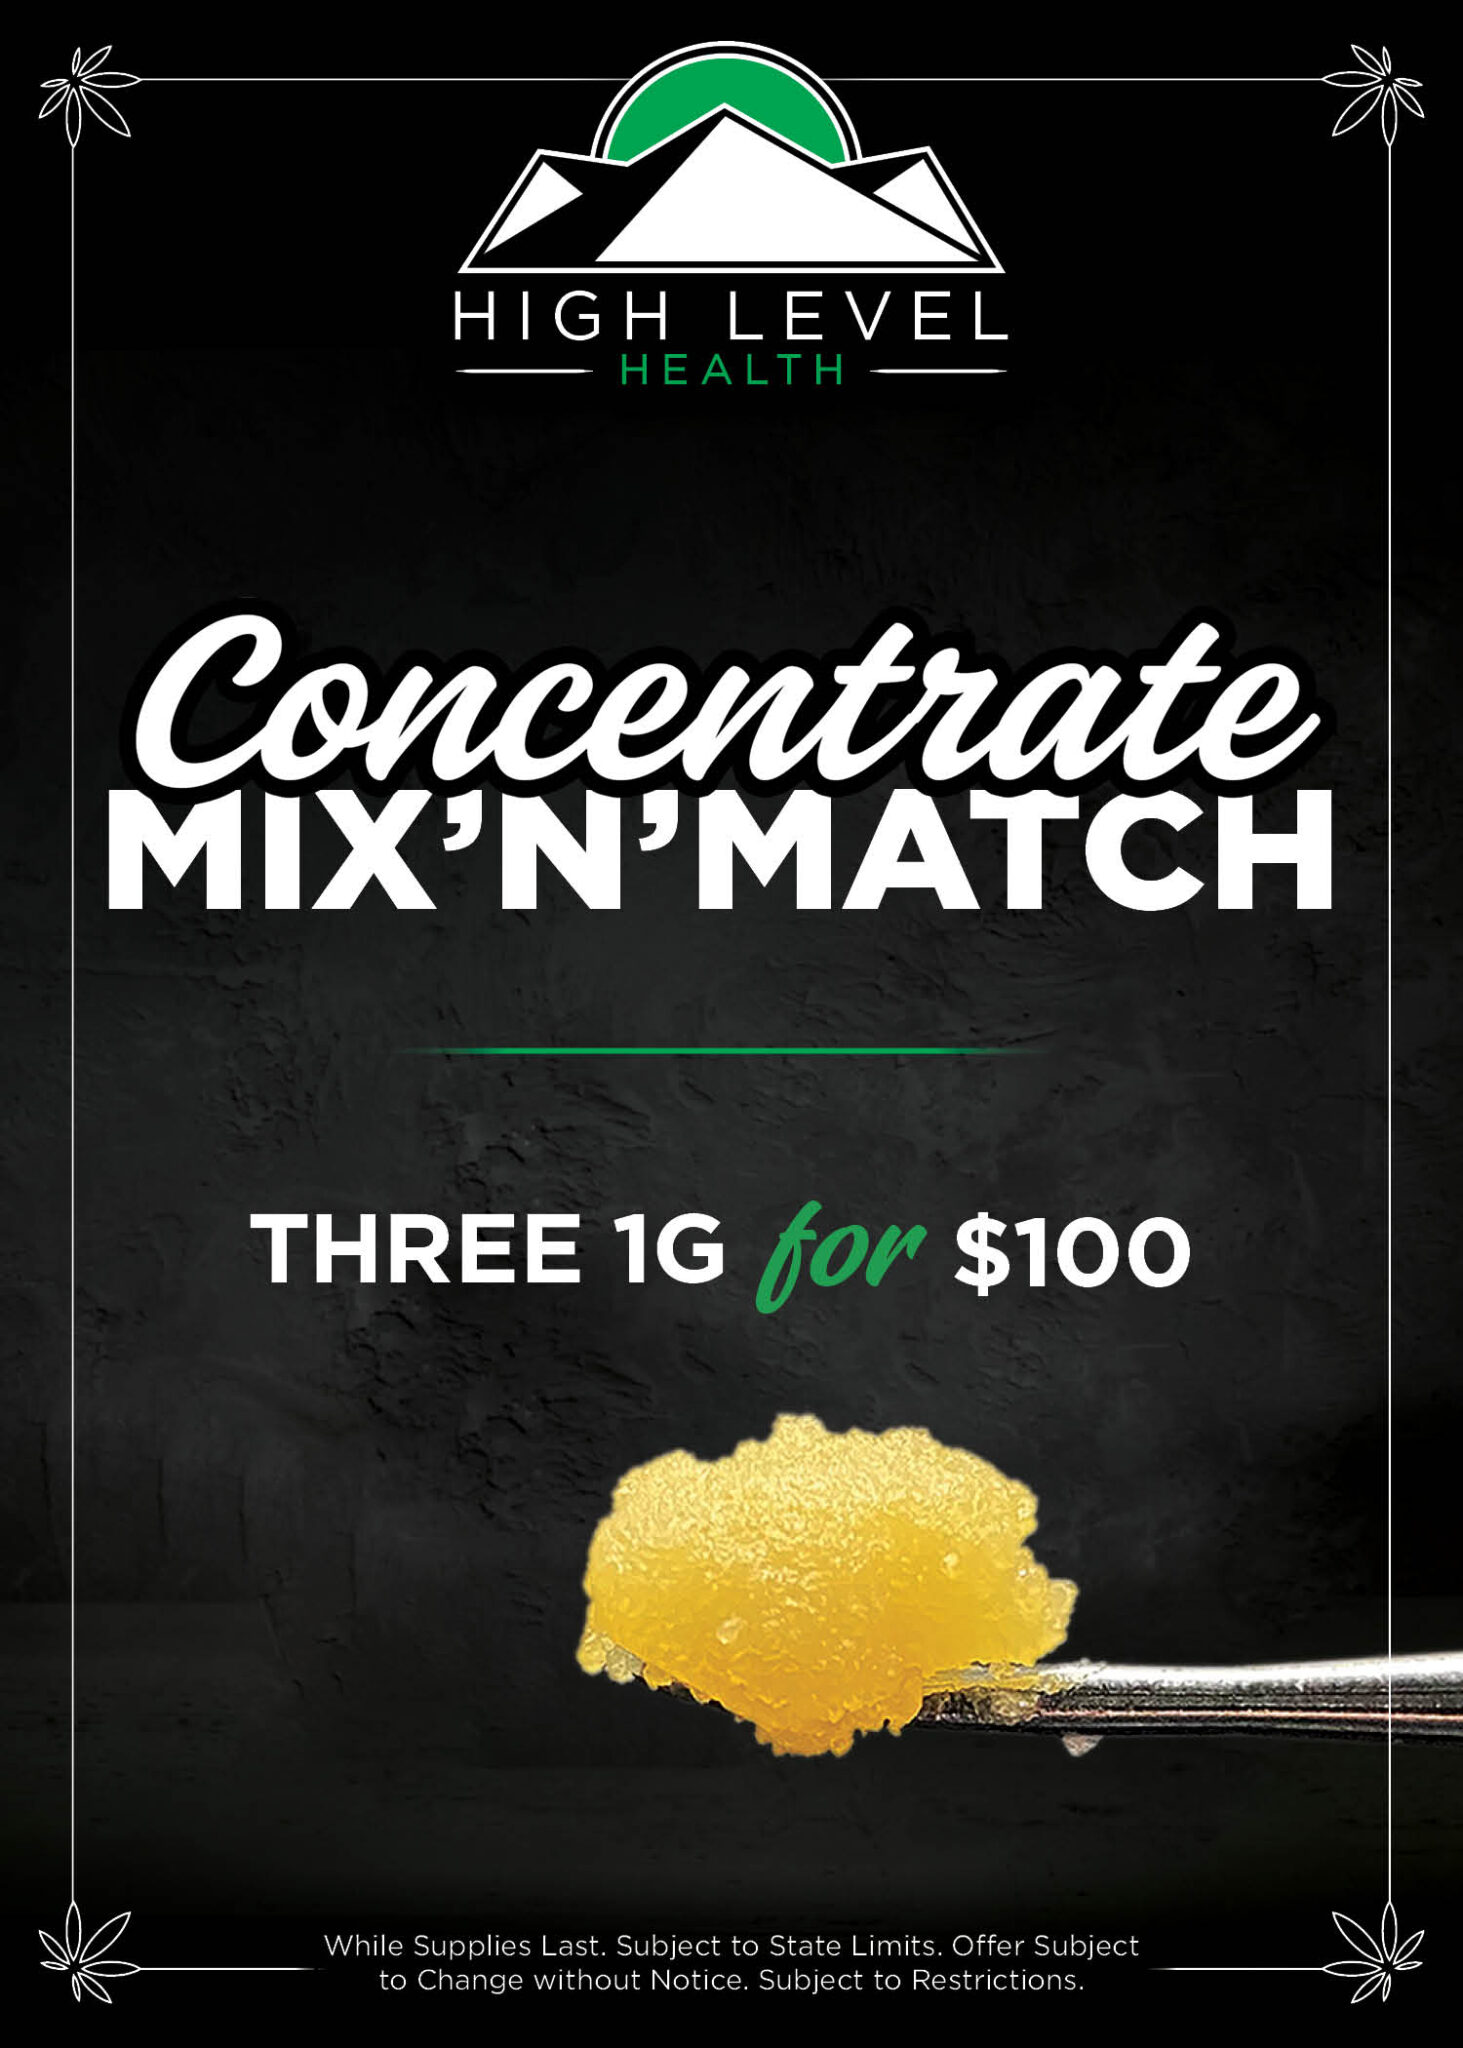 HLH-Concentrate Mix n Match 3 for 100